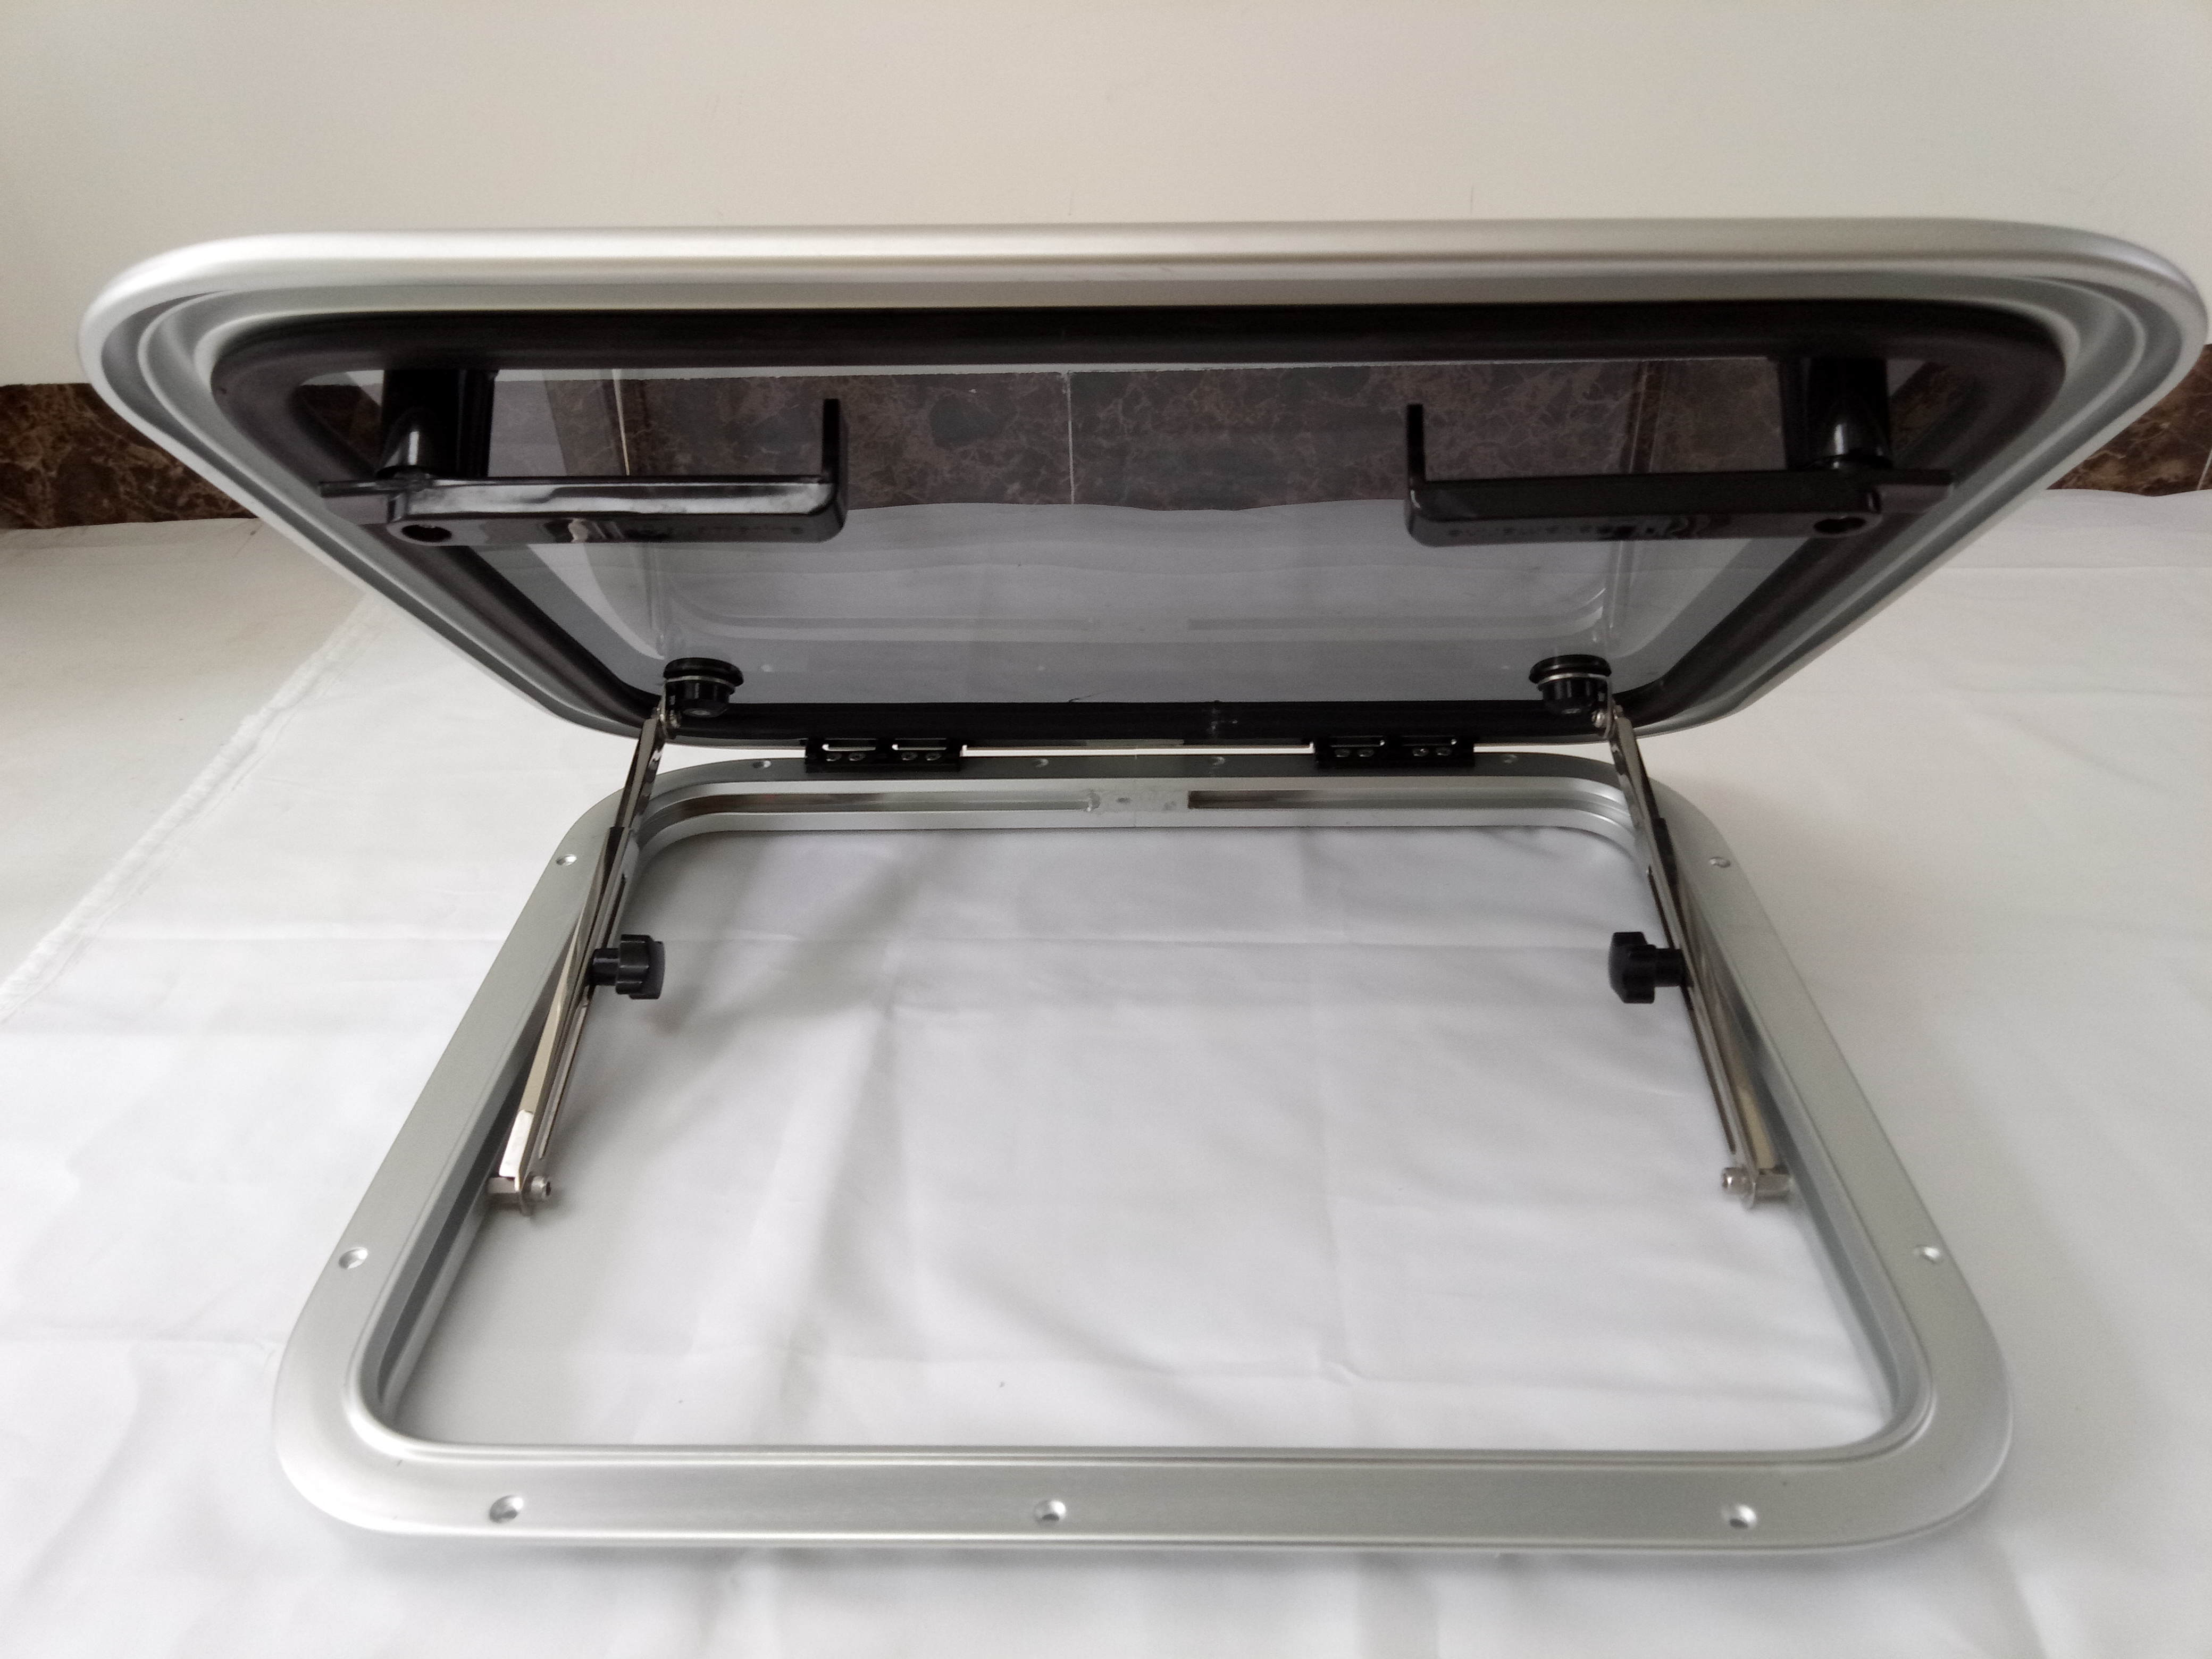 RV Aluminum Rectangular Hatch Window Porthole Porthlight With Tempered Glass 5 Size For  Marine Boat Yacht camper accessories enlarge